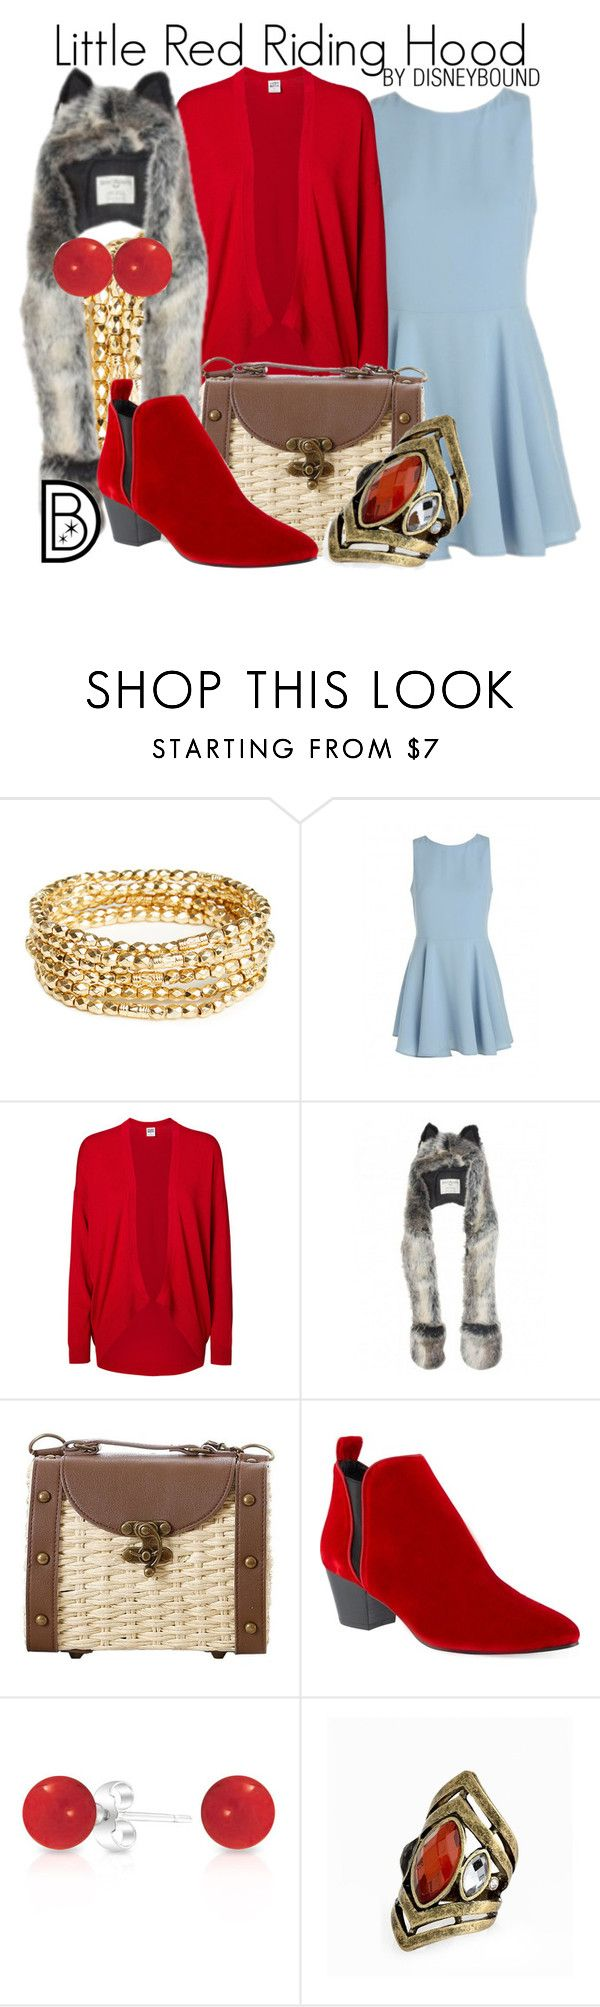 """Little Red Riding Hood"" by leslieakay ❤ liked on Polyvore featuring DailyLook, Vero Moda, Retrò, KG Kurt Geiger and Bling Jewelry"